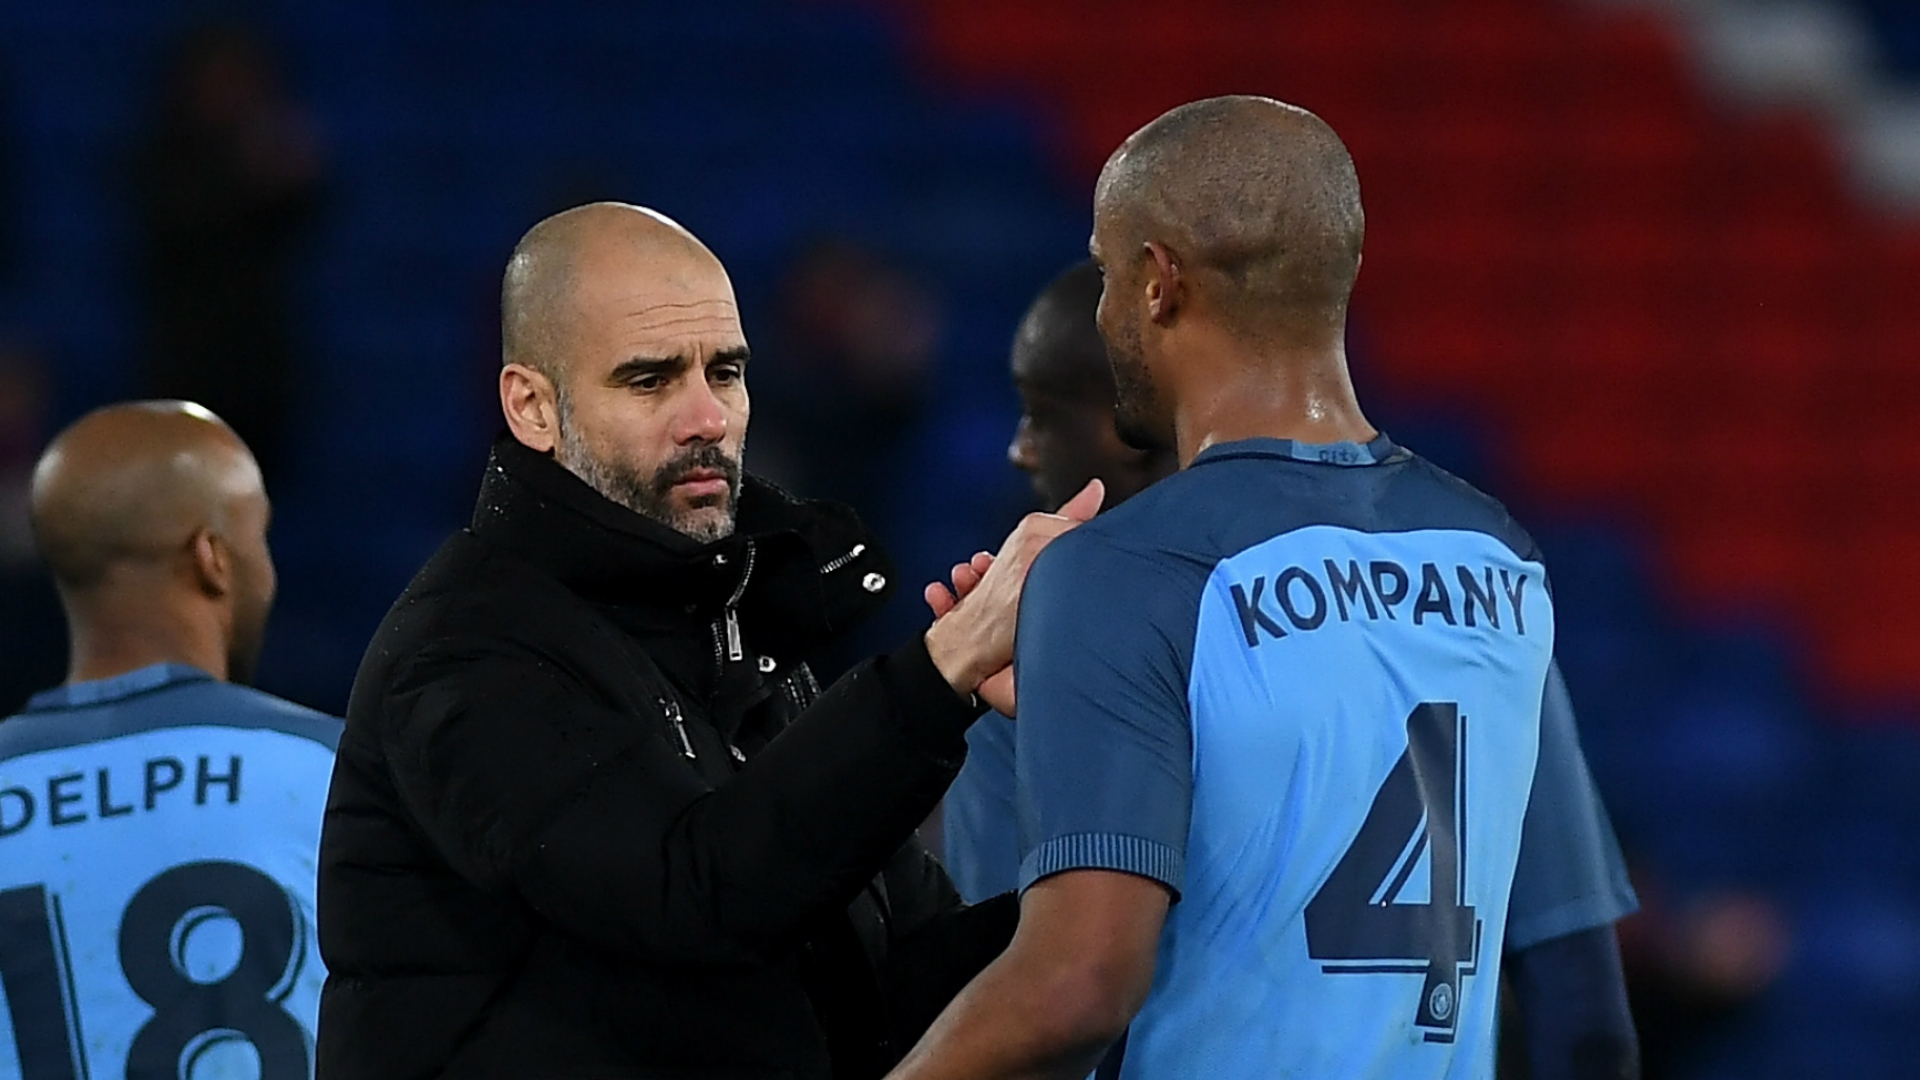 Guardiola Kompany Manchester City